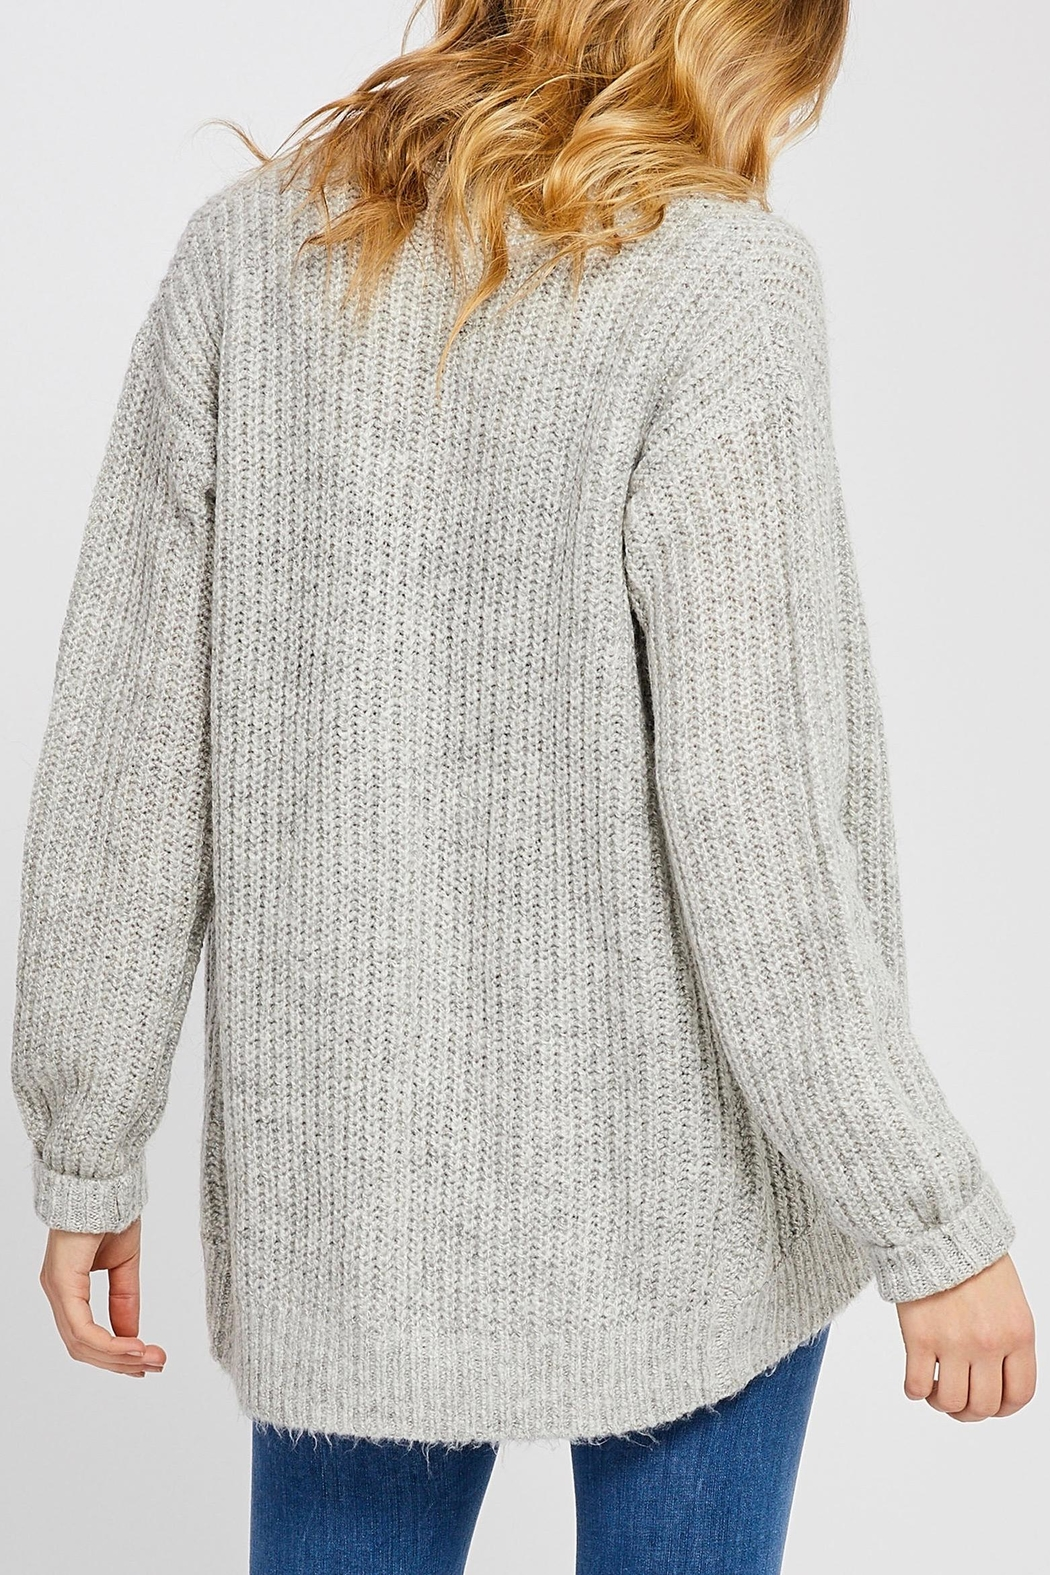 Gentle Fawn Cuffed Cocoon Cardigan - Side Cropped Image